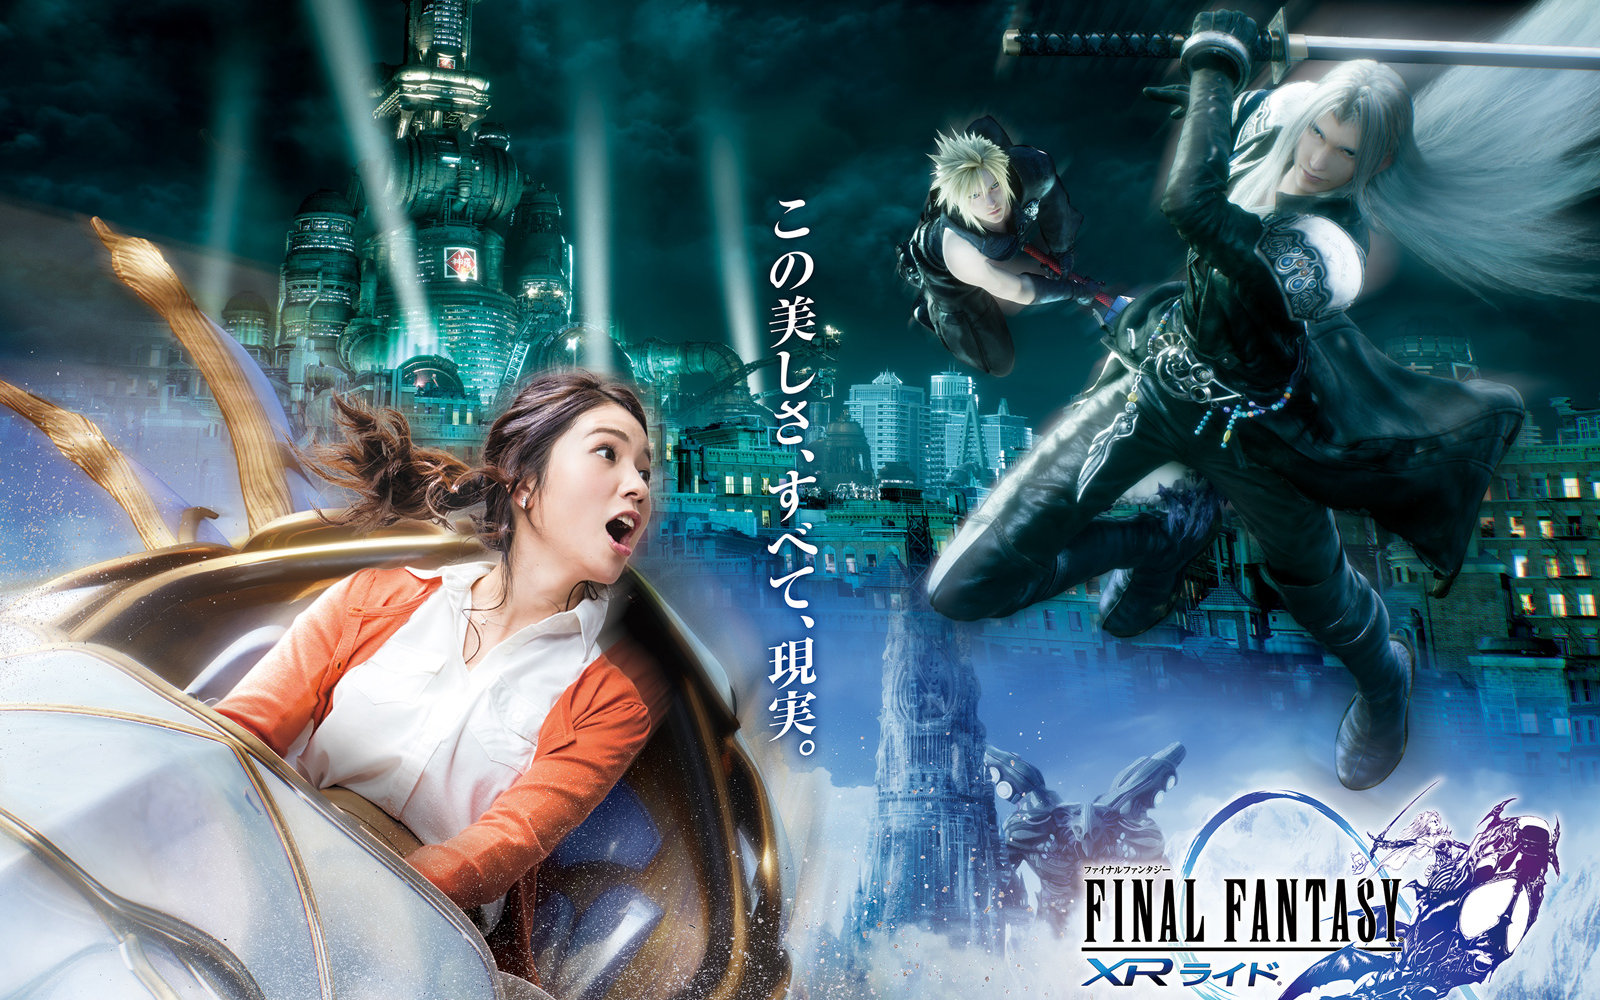 Final Fantasy XR Ride — Universal Studios Japan